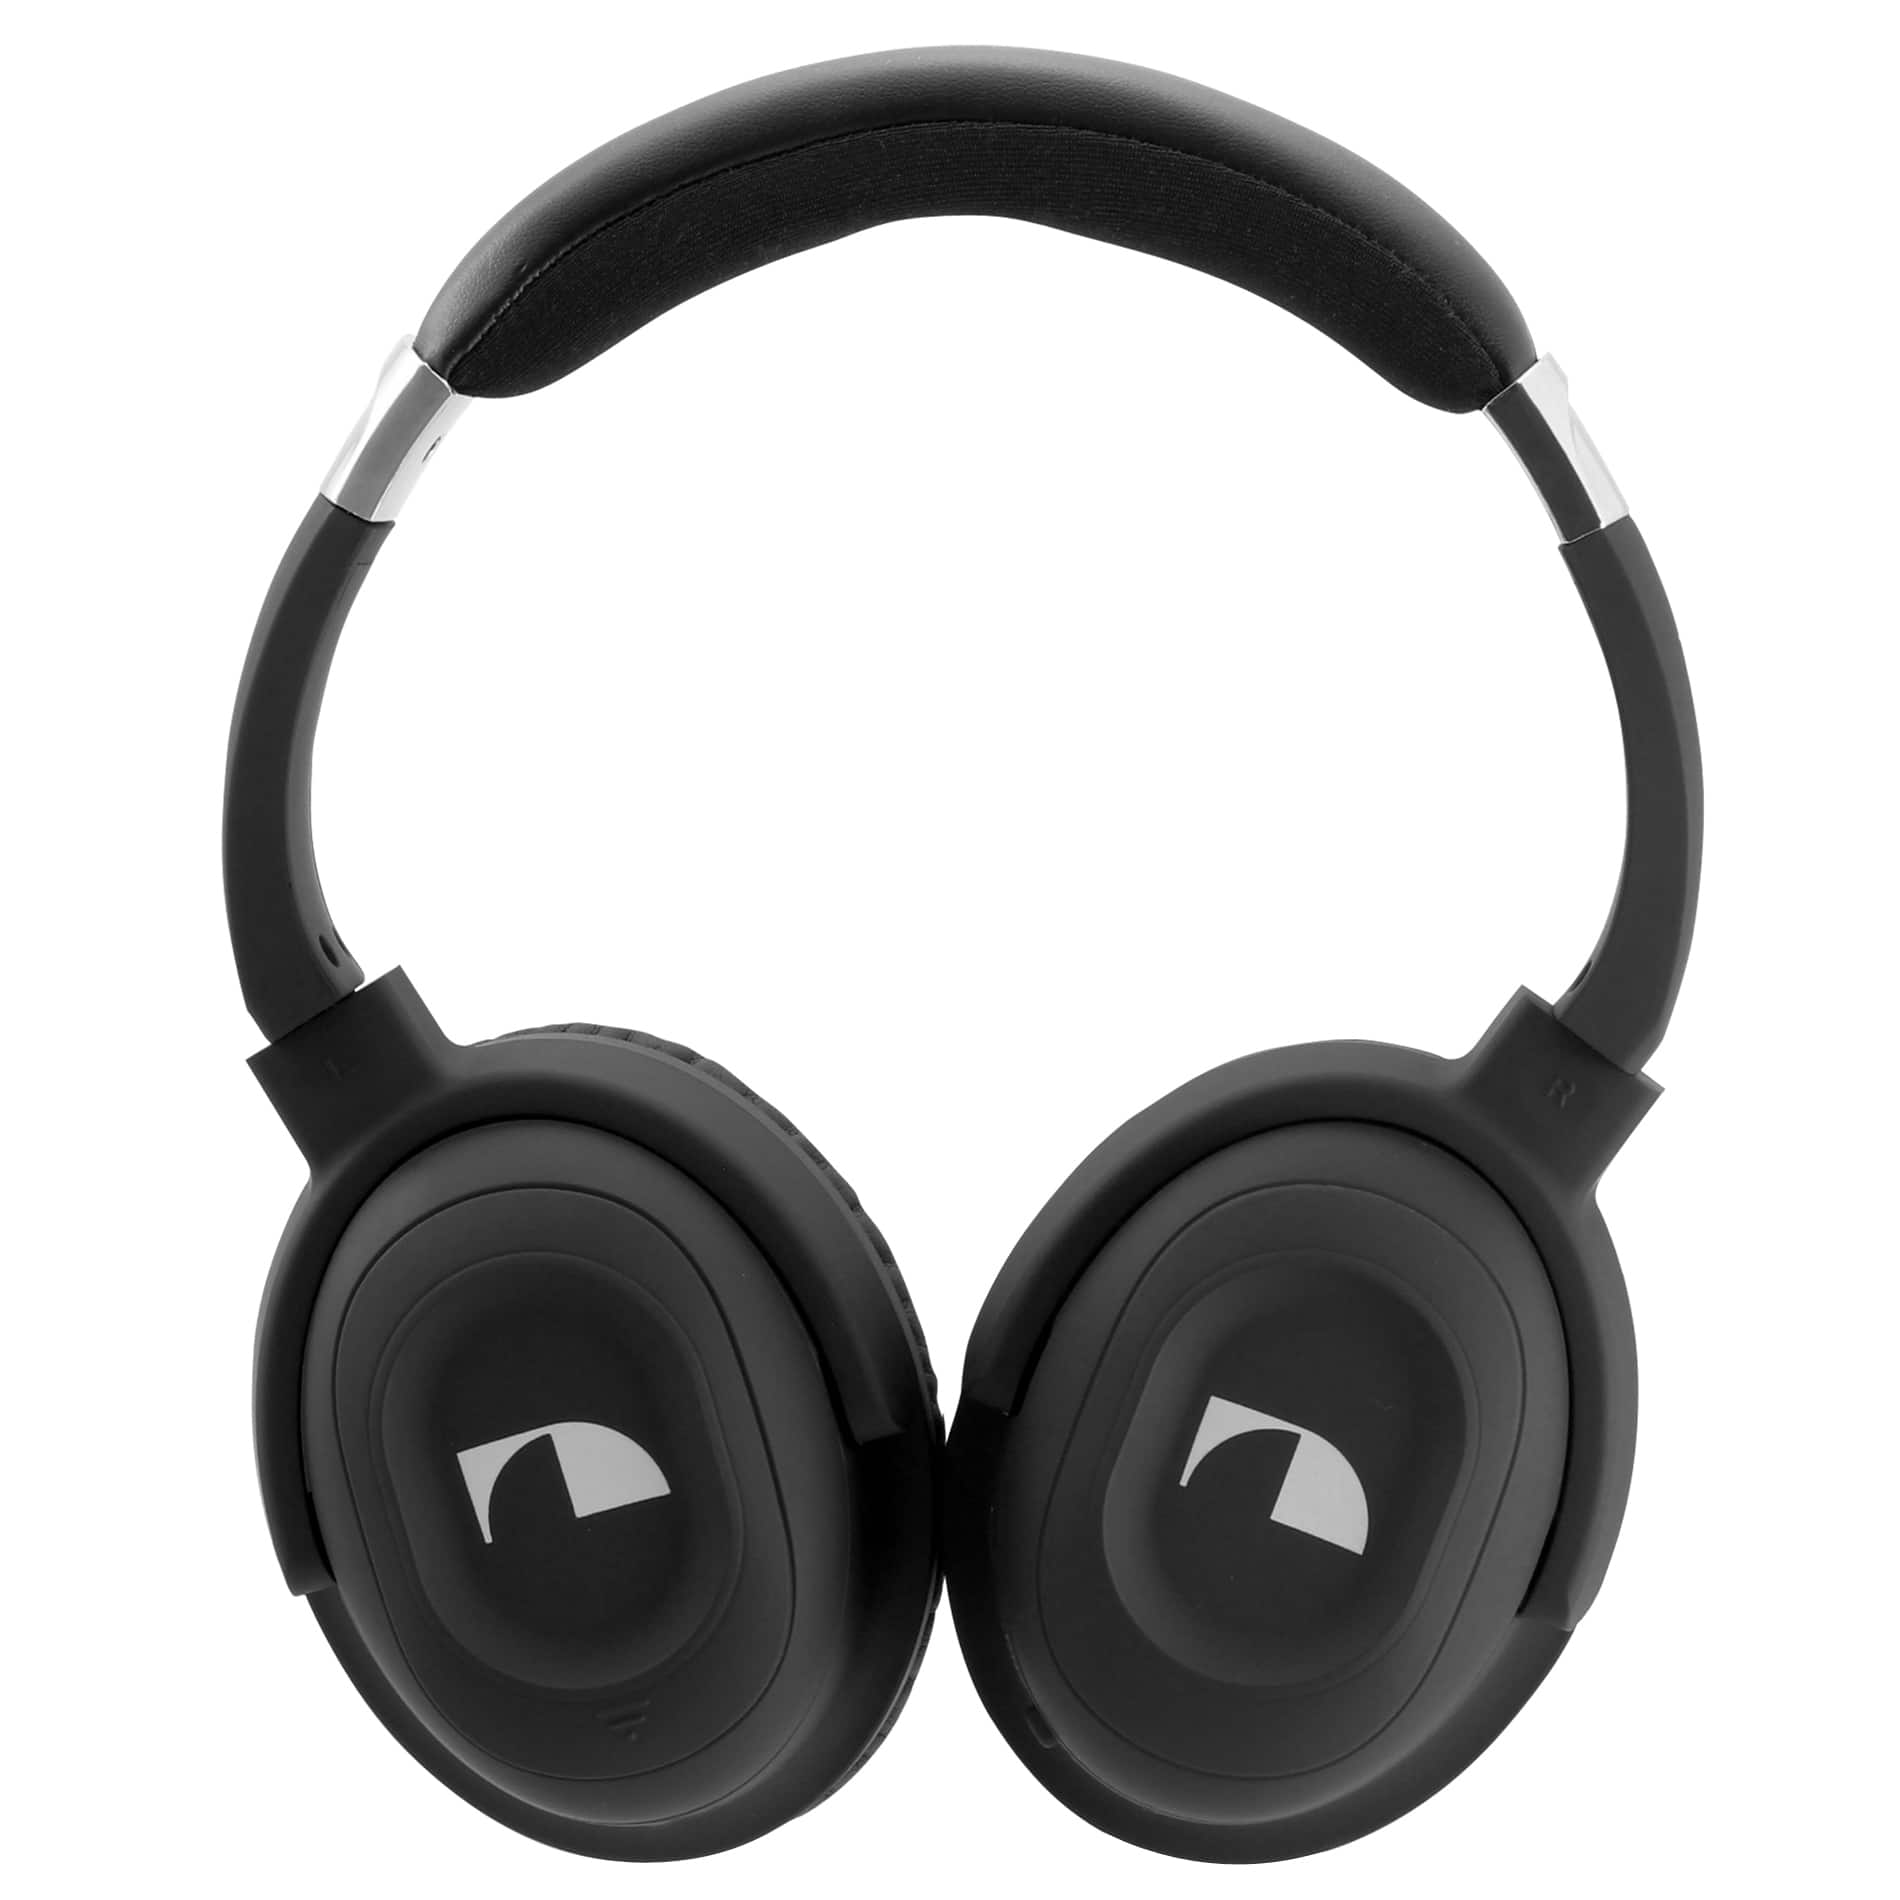 Nakamichi  NC40 Noise-Cancelling Headphones $59.99 with $40 in points - Kmart